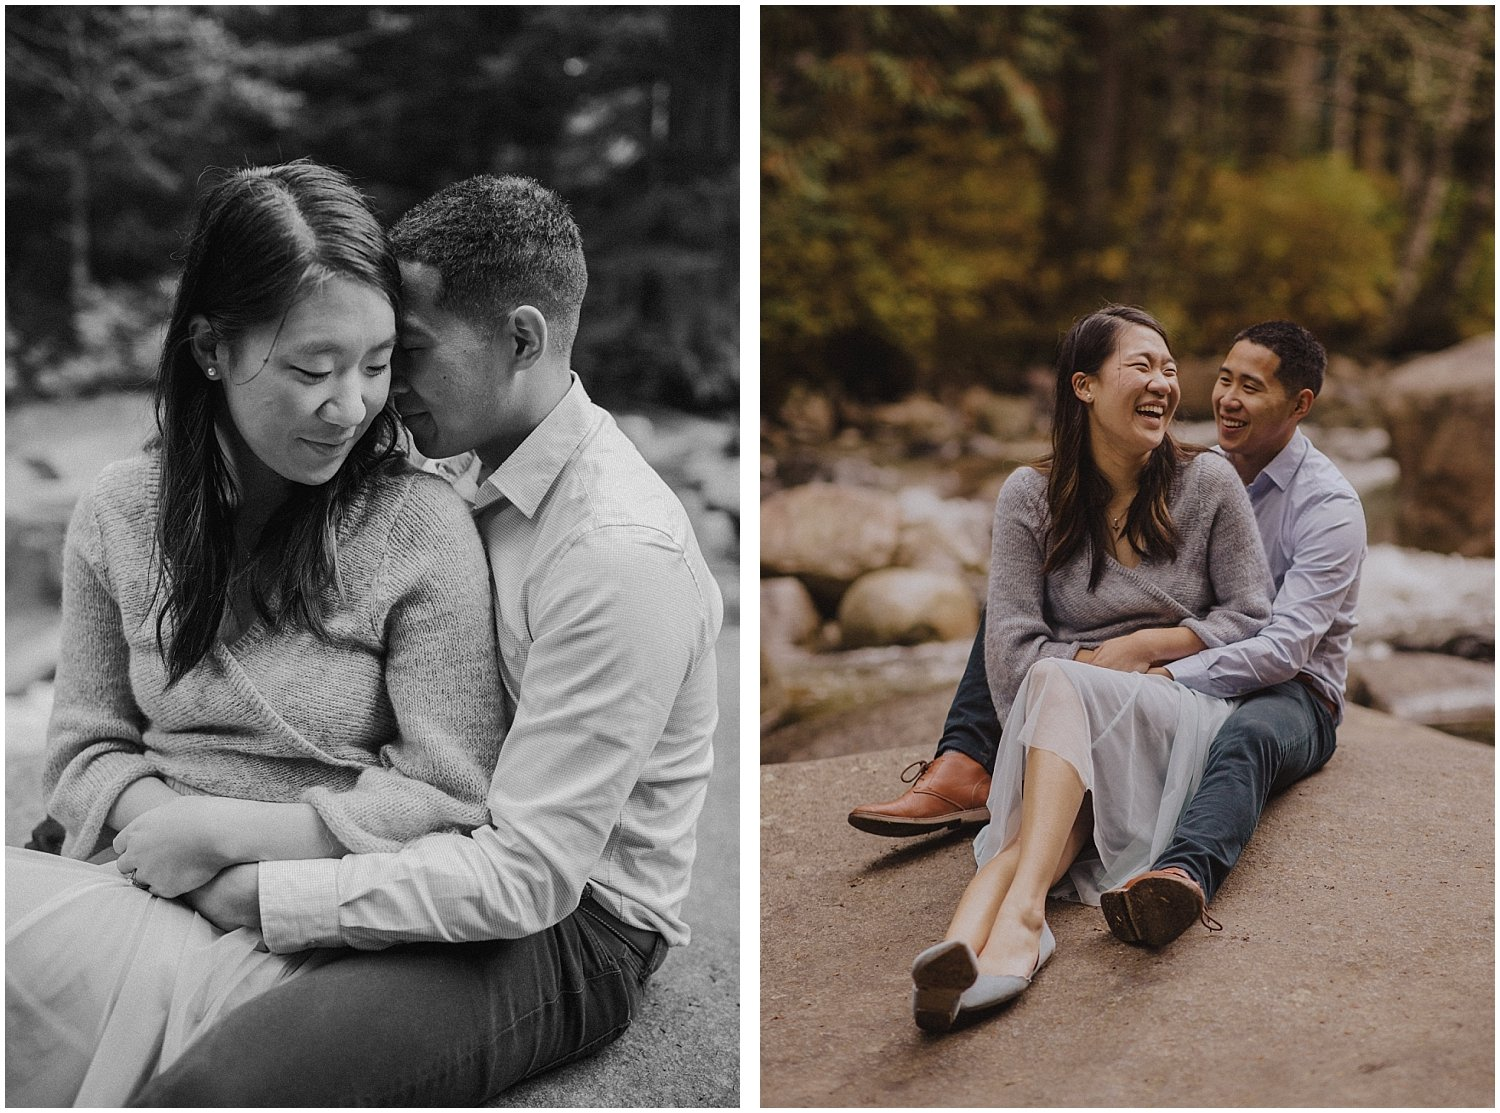 Couple laughing on a rock Seattle Wedding and Elopement Photographer Kyle Szeto